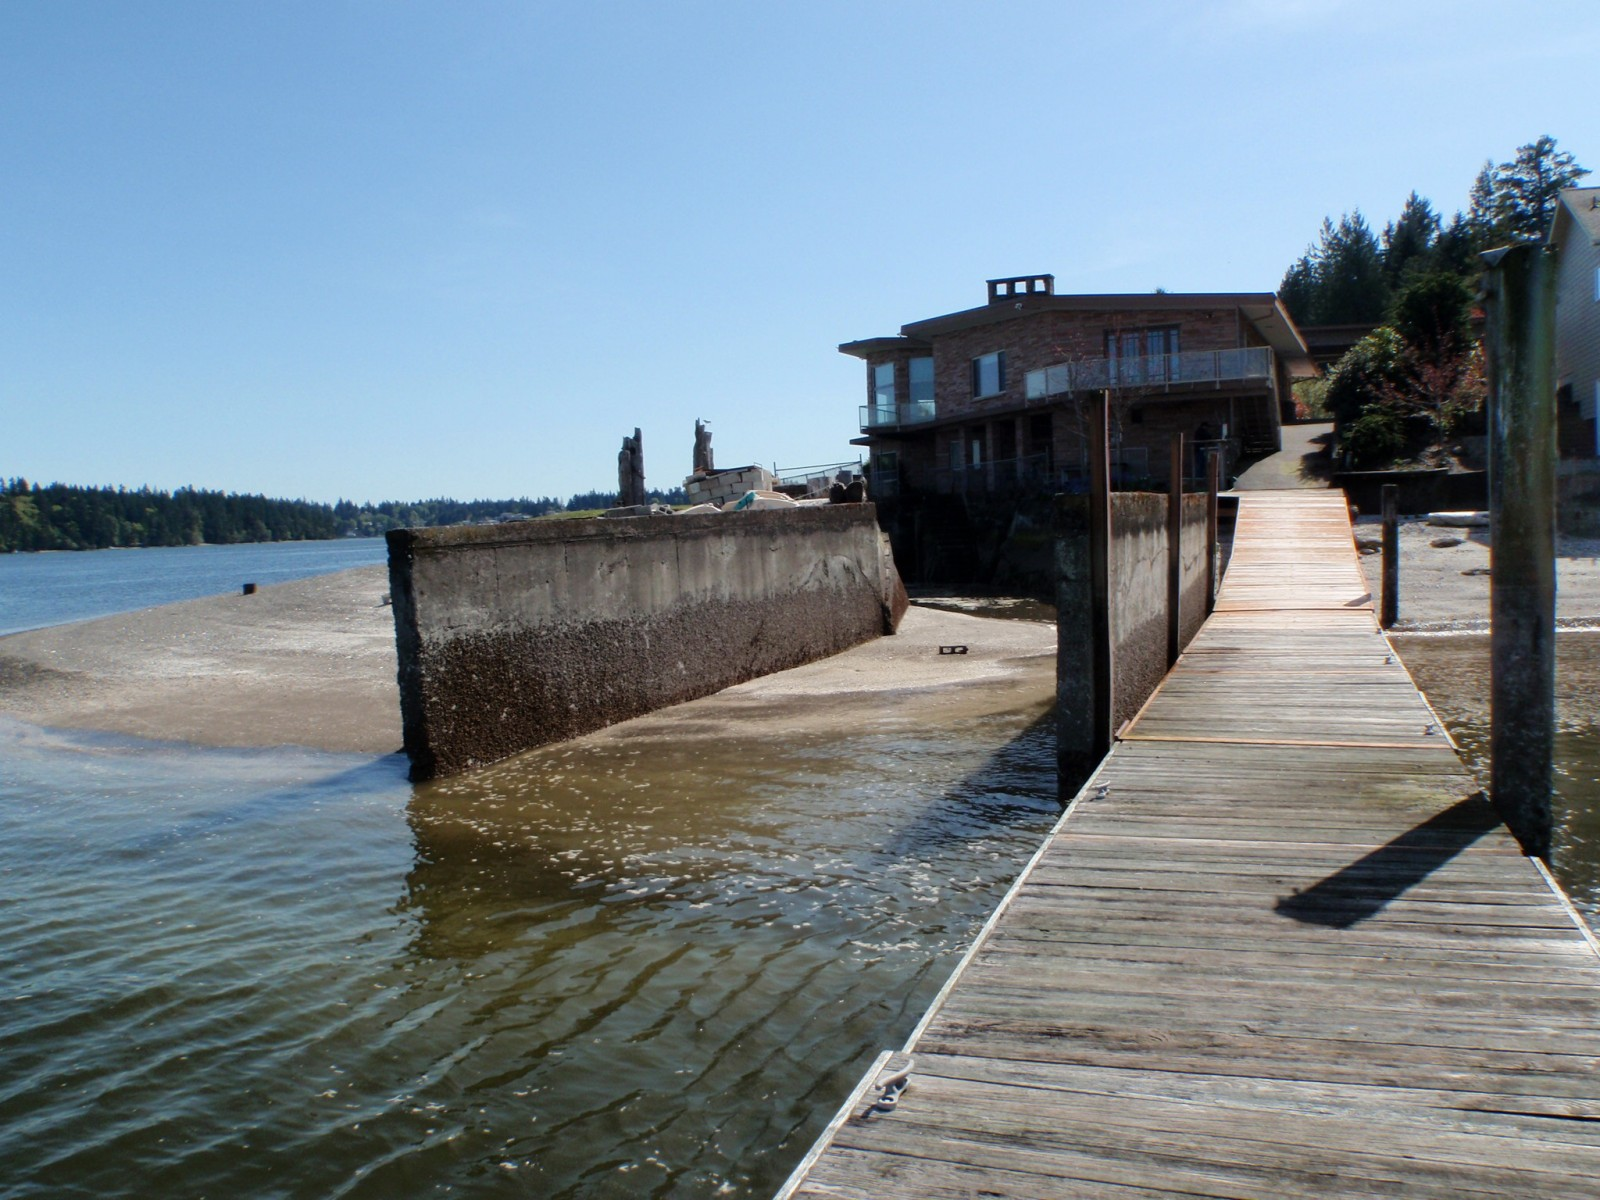 Collier Boat Ramp and Jetty Removal, Puget Sound, WA (2014)